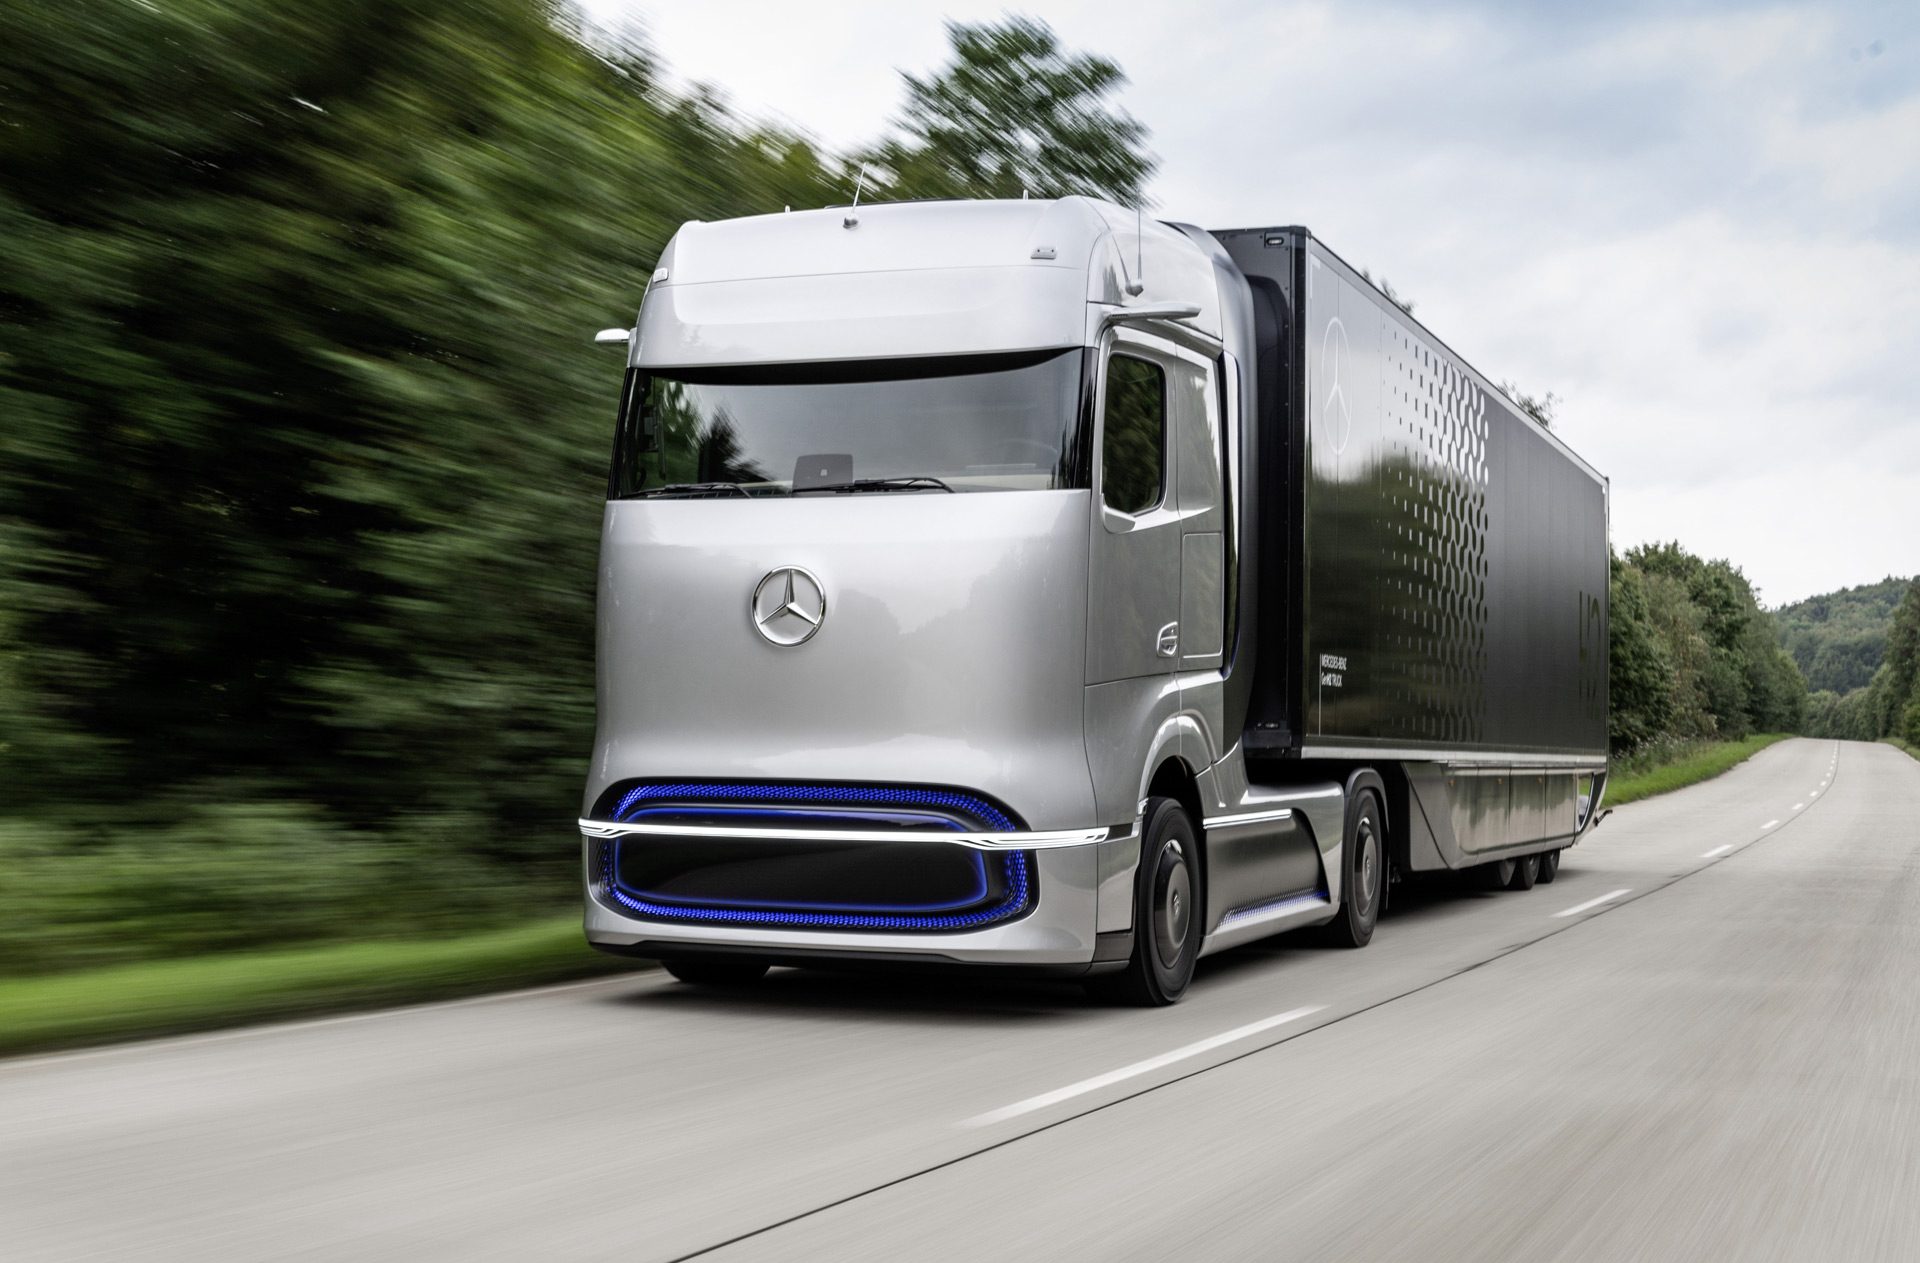 Mercedes-Benz previews fuel-cell semi with GenH2 Truck concept